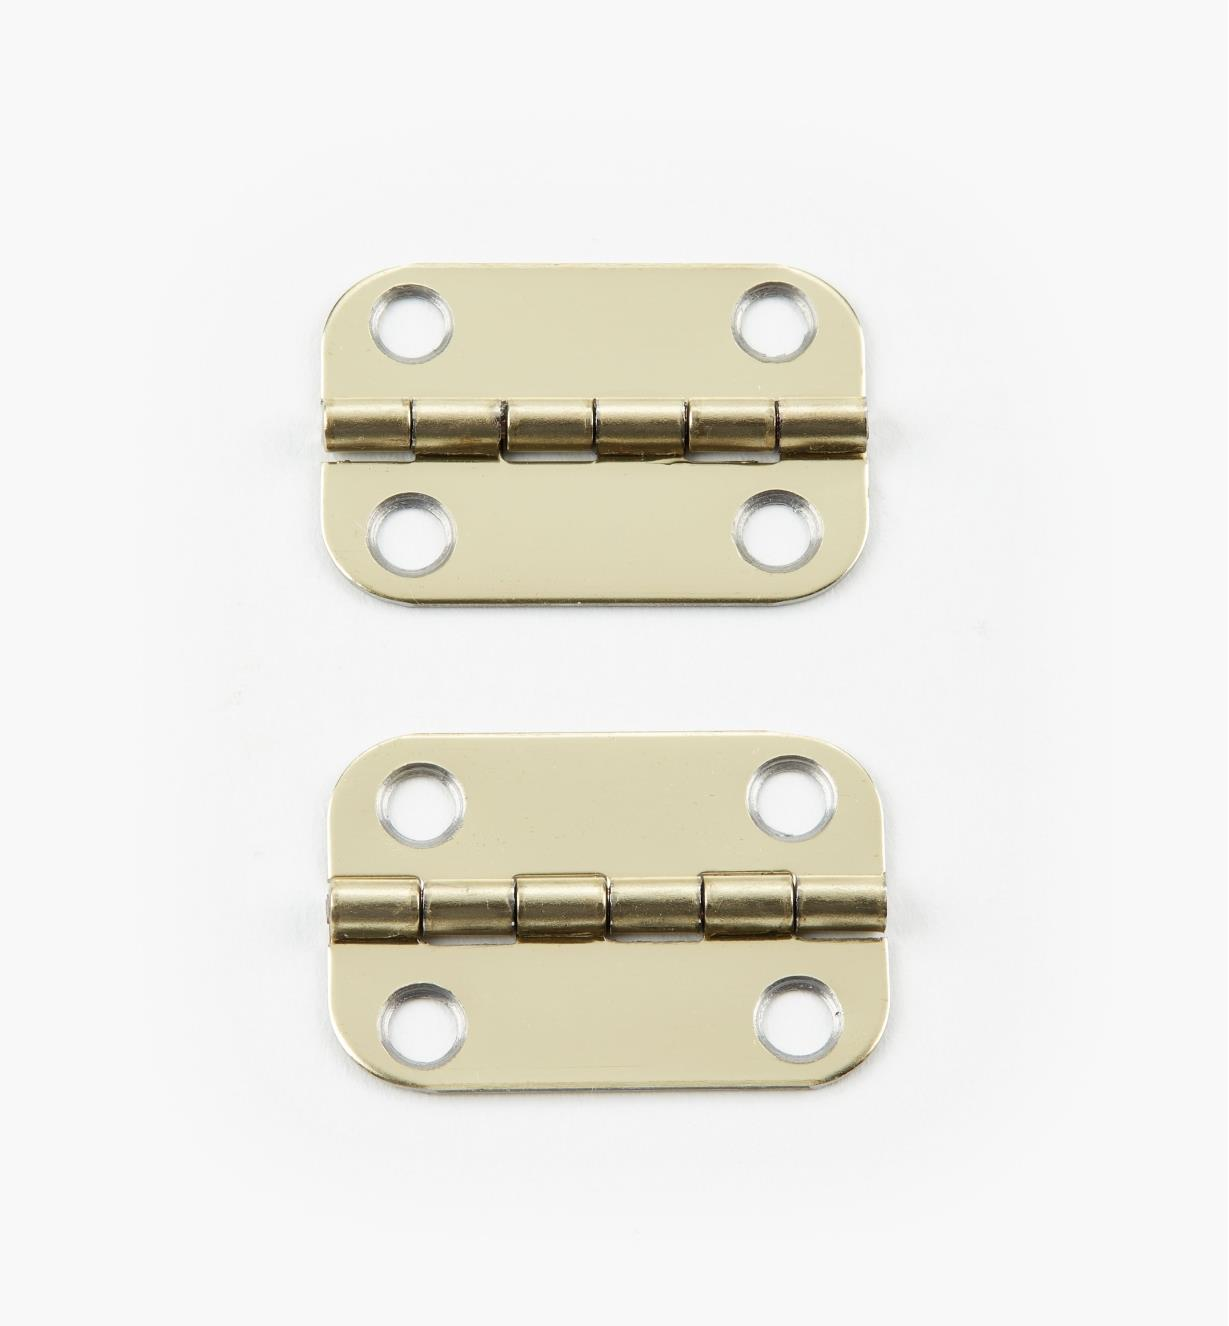 00D3130 - 30mm x 20mm Round Edge Hinges, pr.